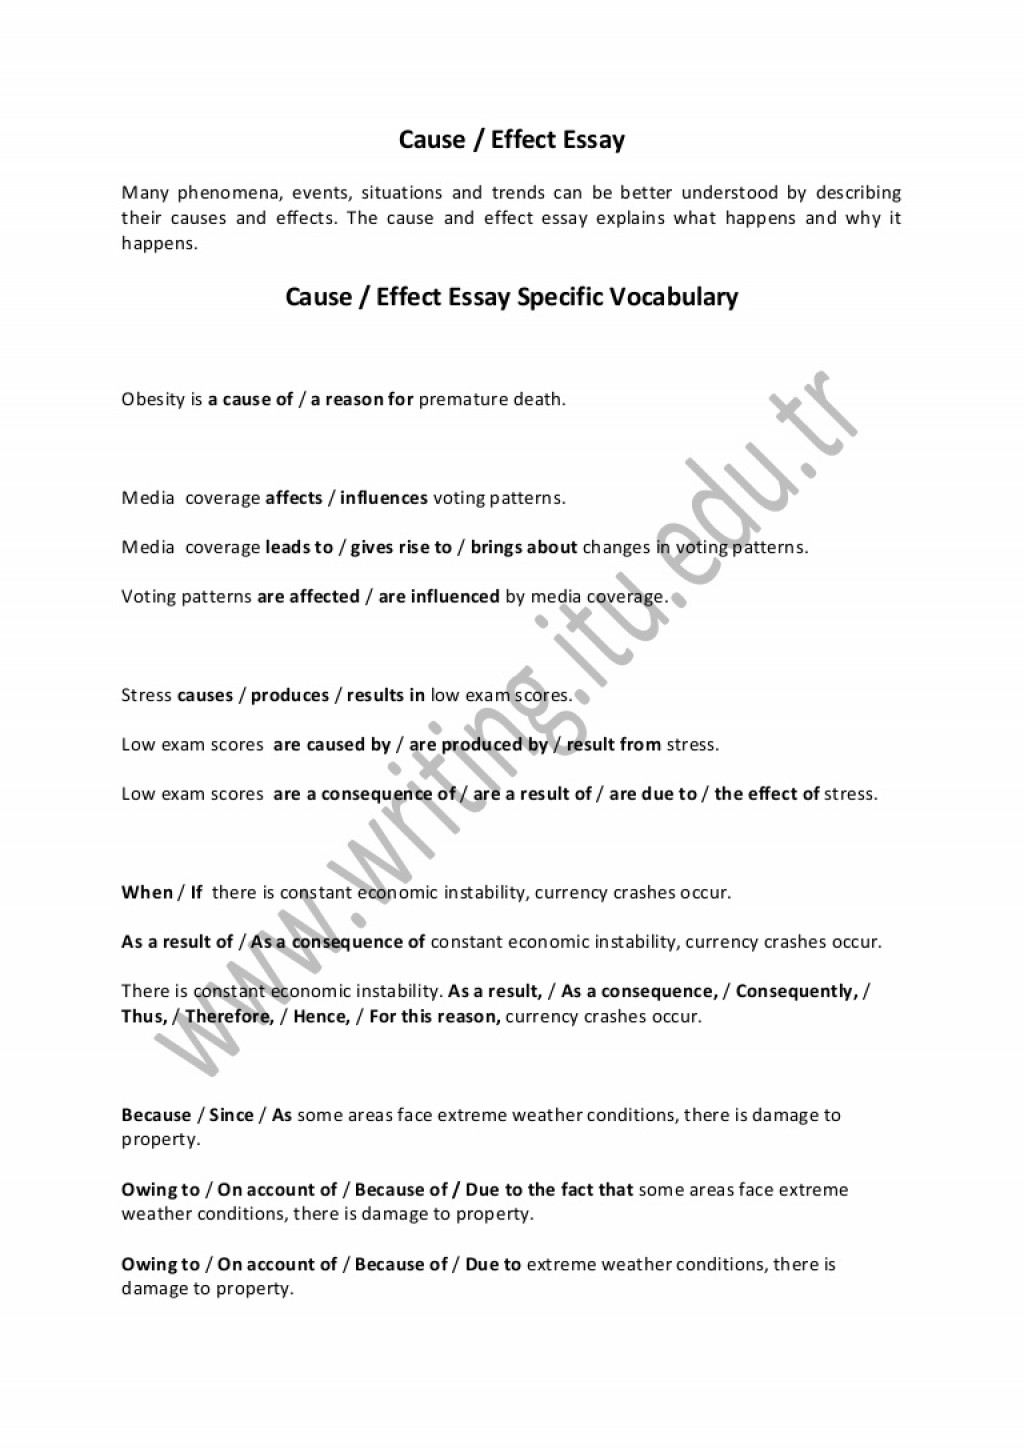 019 Alcoholism Cause And Effect Essay Example Causeandeffectessay Thumbnail Fearsome Large